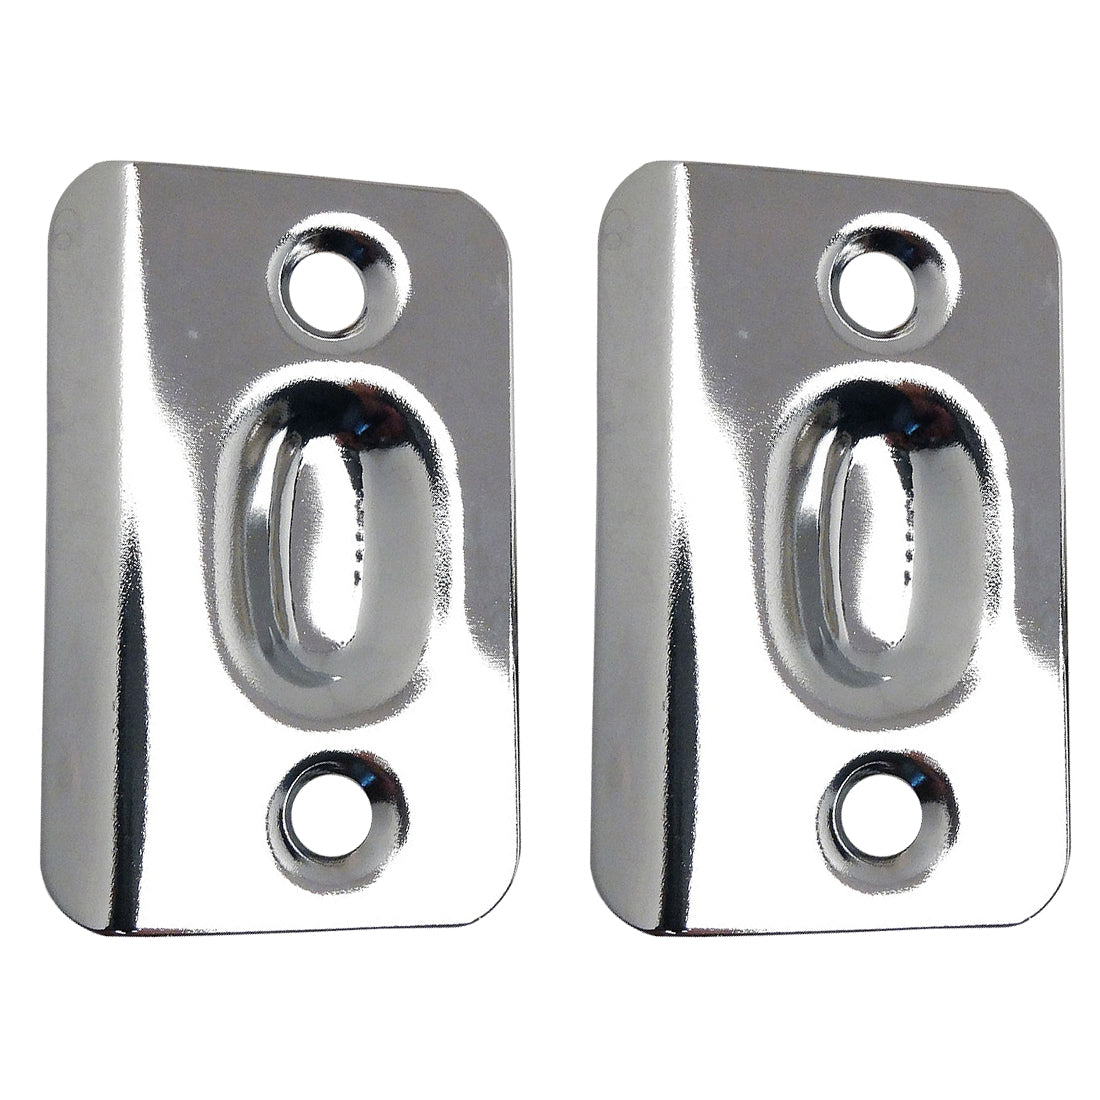 Polished Chrome Replacement Ball Catch Strike Plates (Pair)